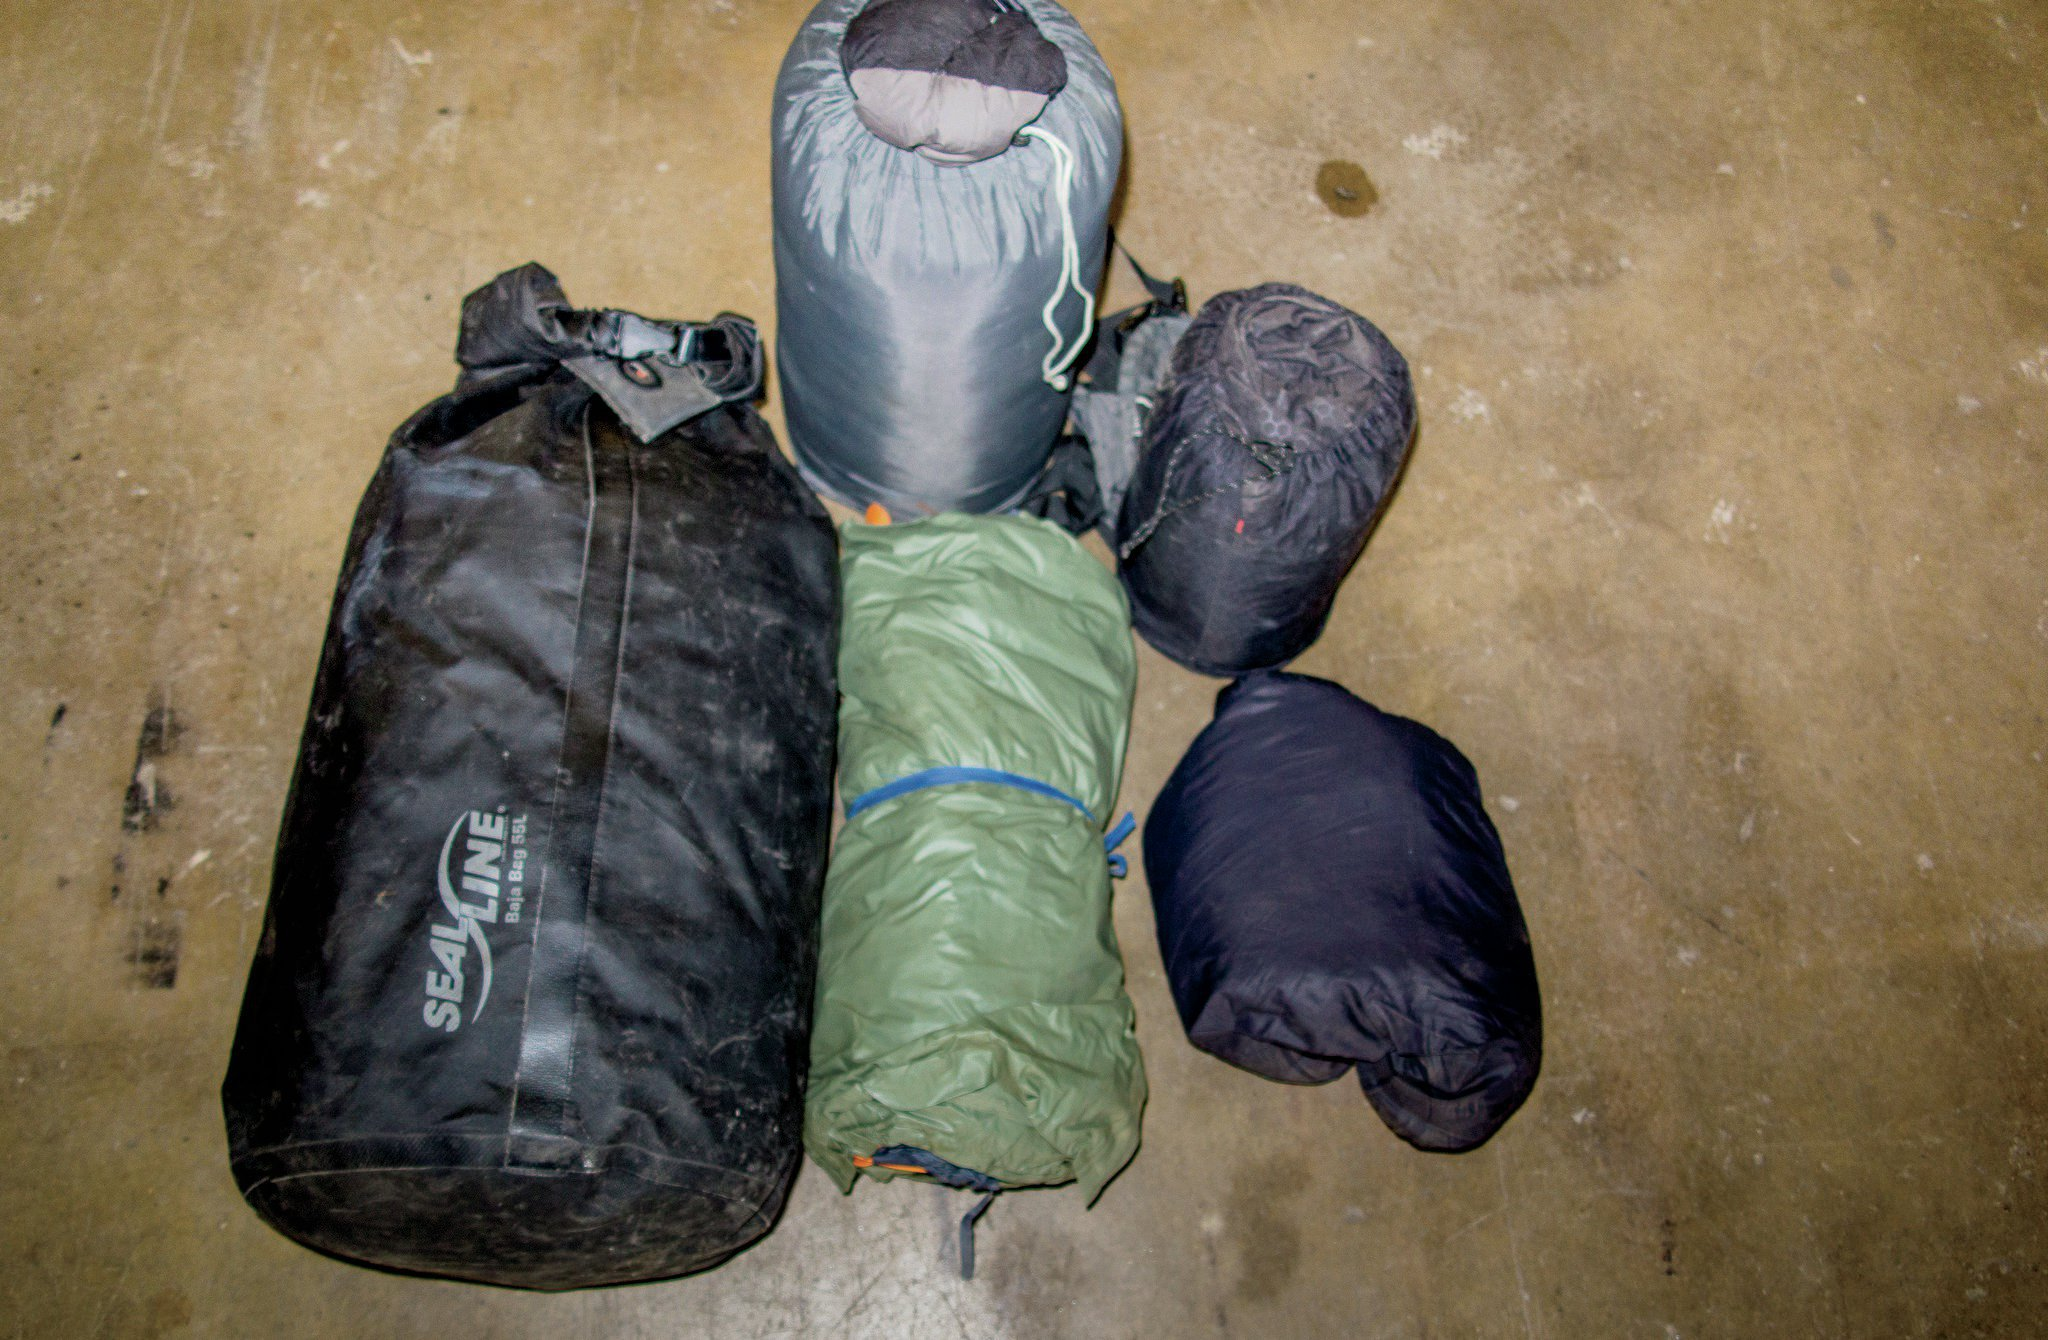 Dry bags make excellent storage for soft, light items such as sleeping gear. The bags are waterproof and dustproof and can be easily lashed to a roof rack. We keep our sleeping bag, tent, sleeping pad, and pillow all together in one bag. Note the poncho wrapped around the tent that doubles as a tarp.